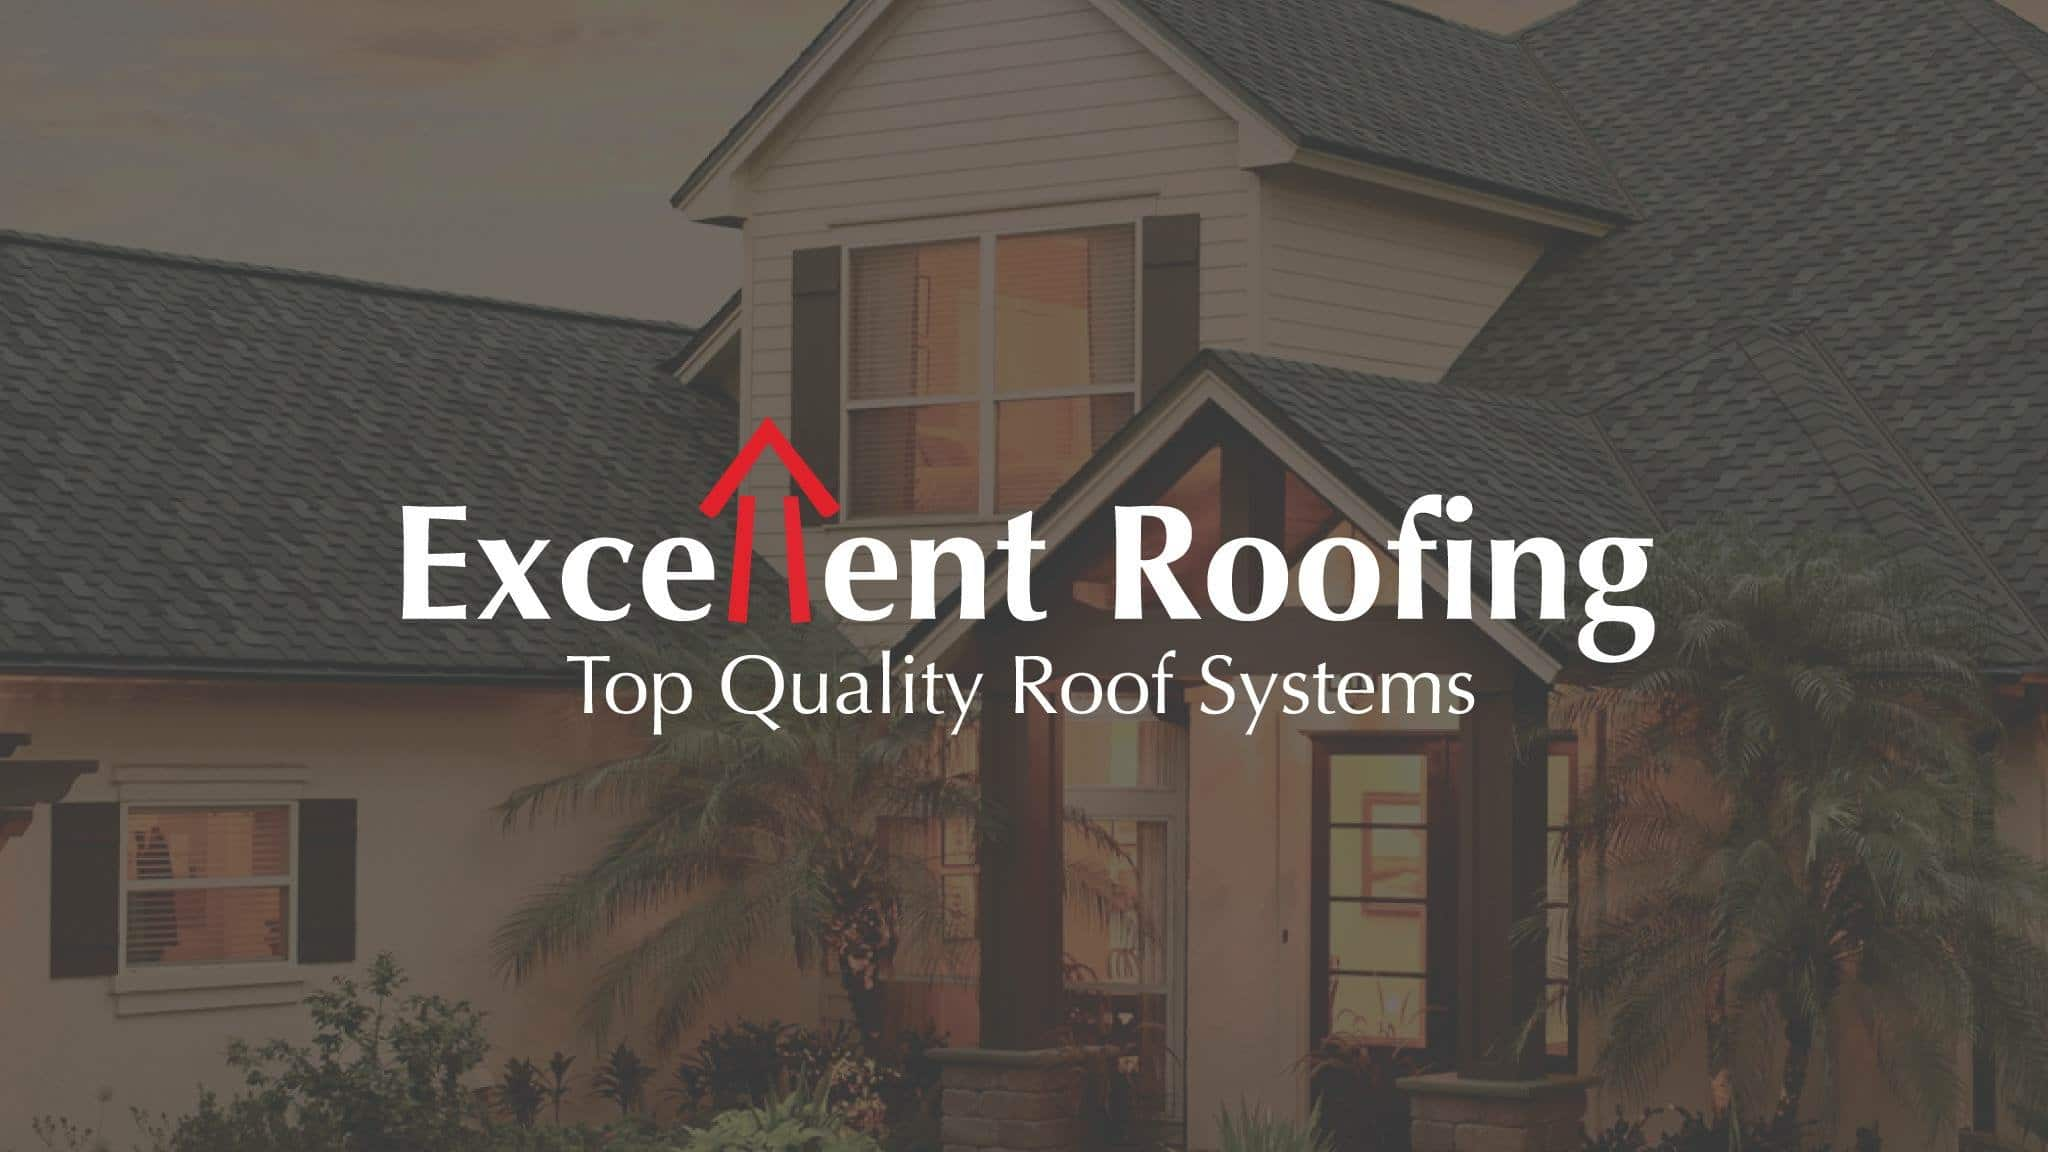 Excellent Roofing The Best In Memphis For Home Or Business